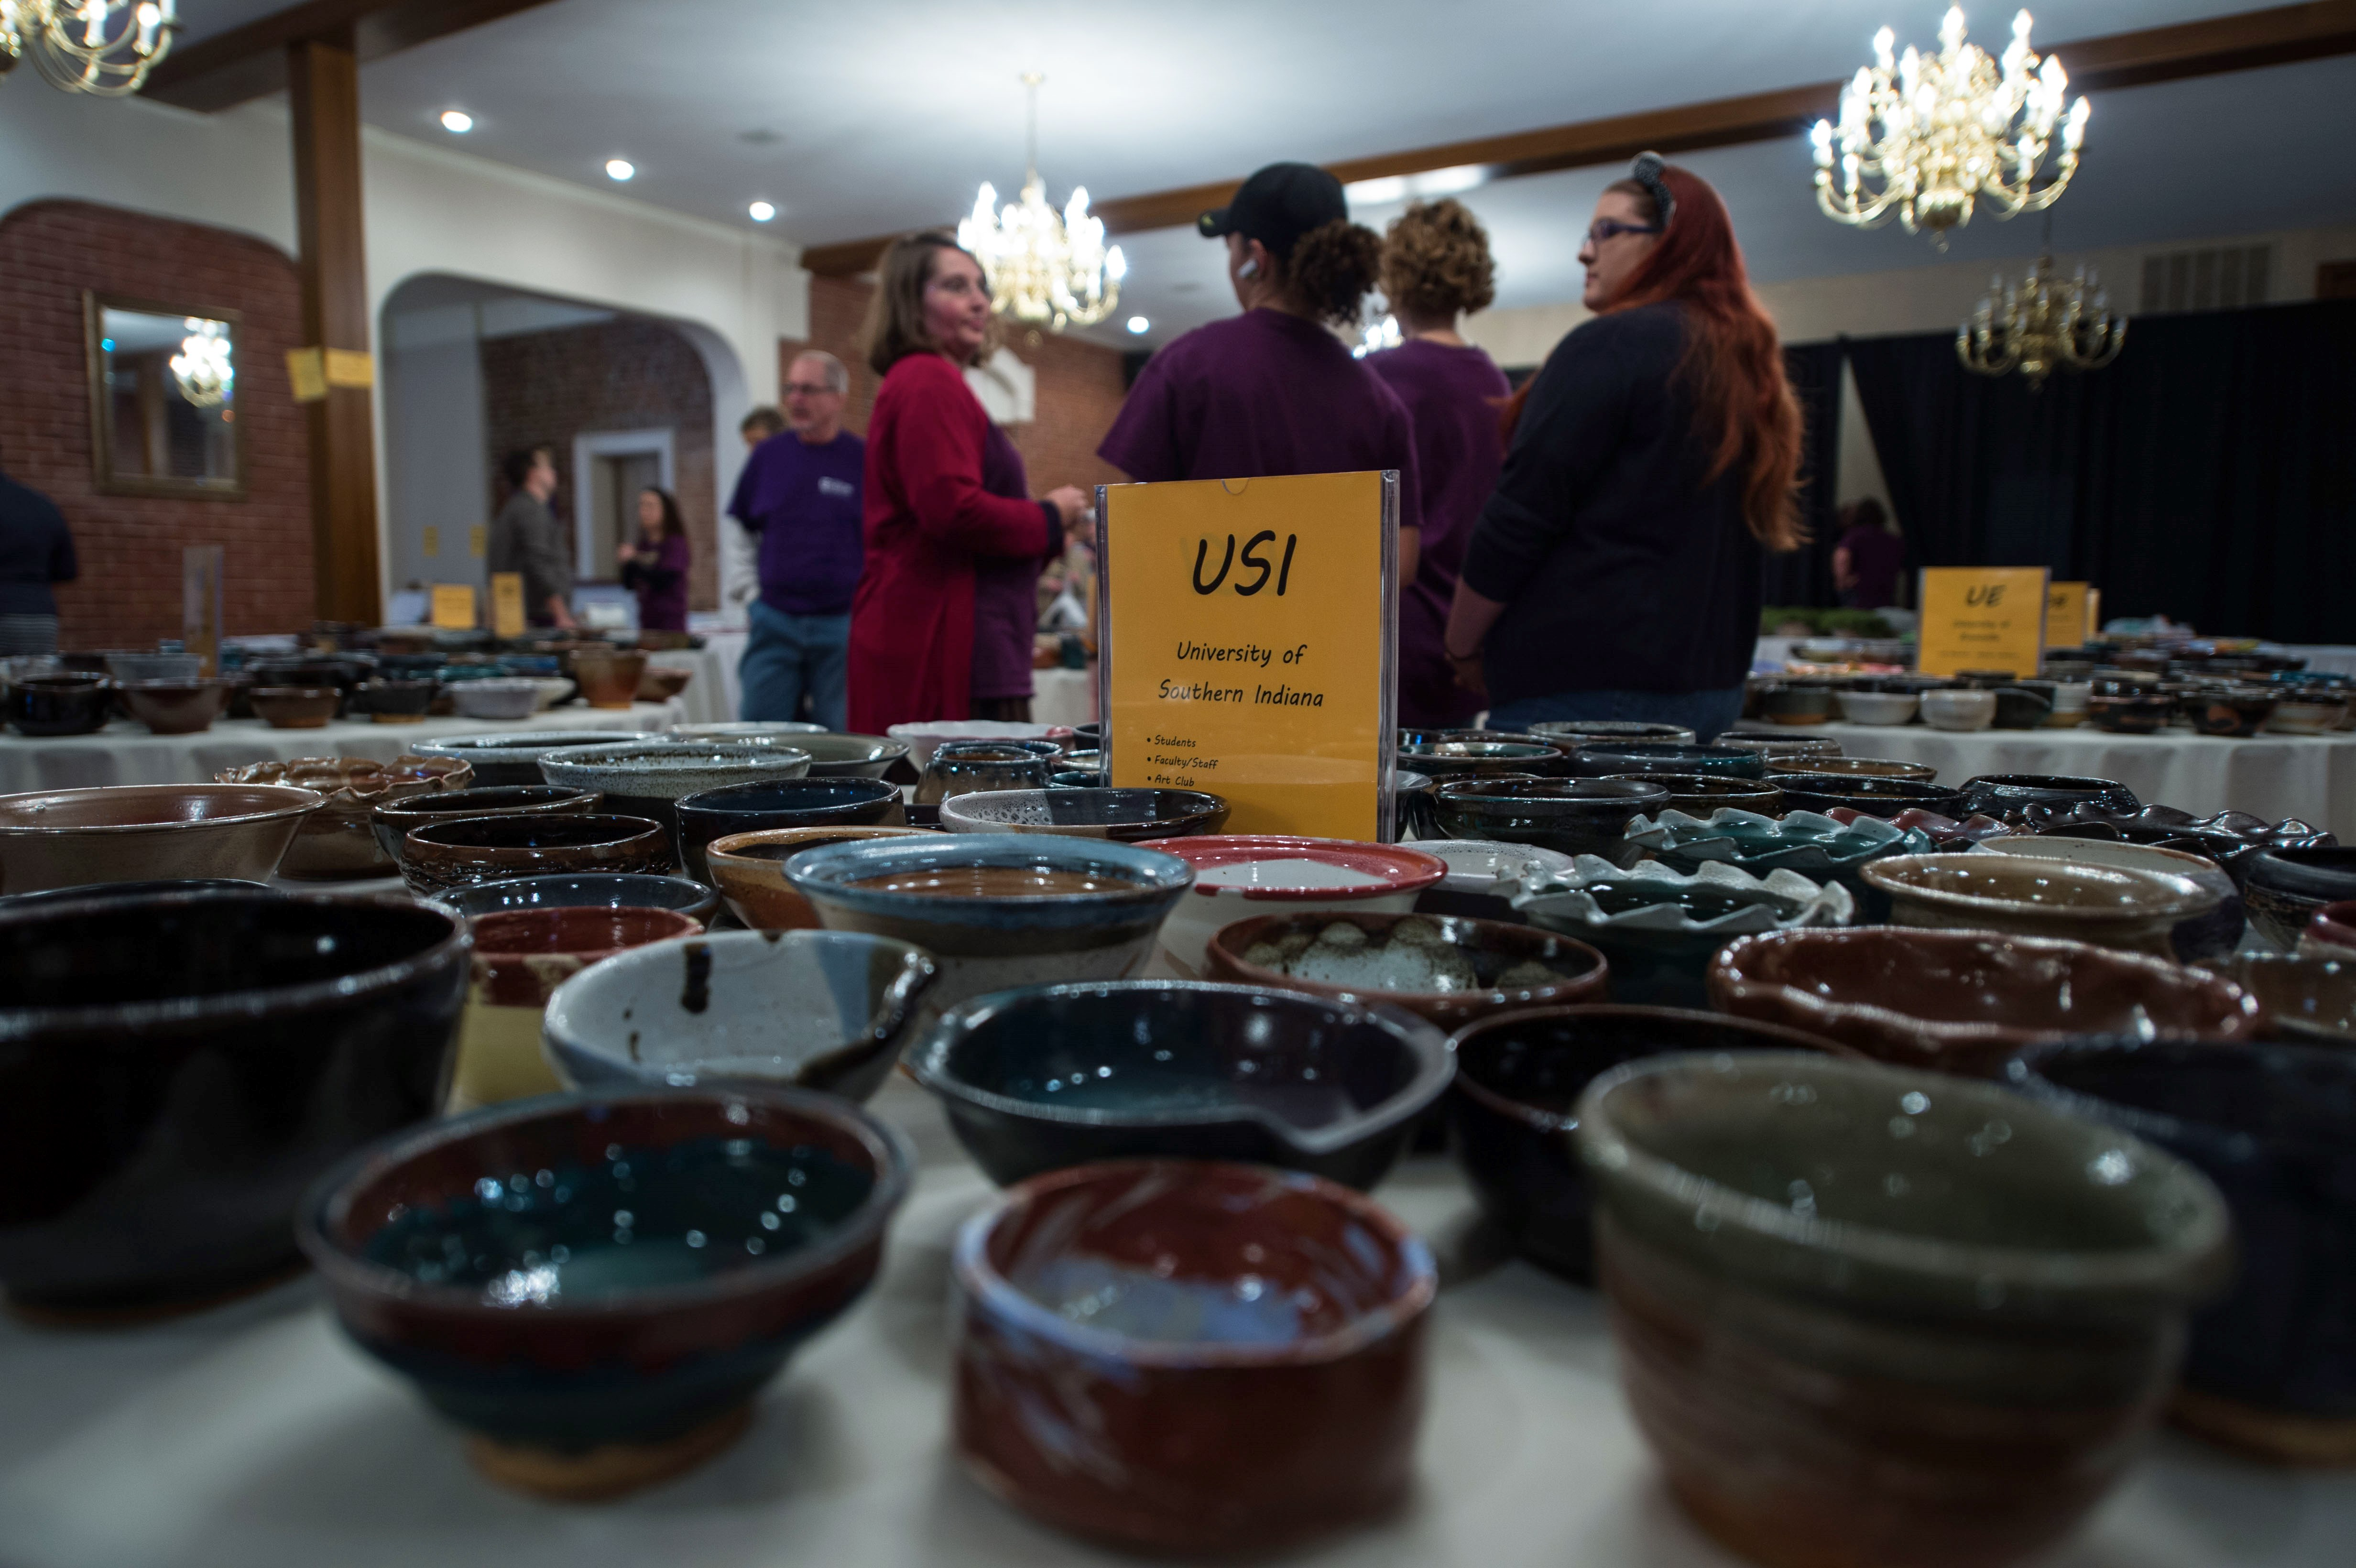 Empty Bowls Evansville 2017 to offer soup and support for the homeless in Haynie's Corner